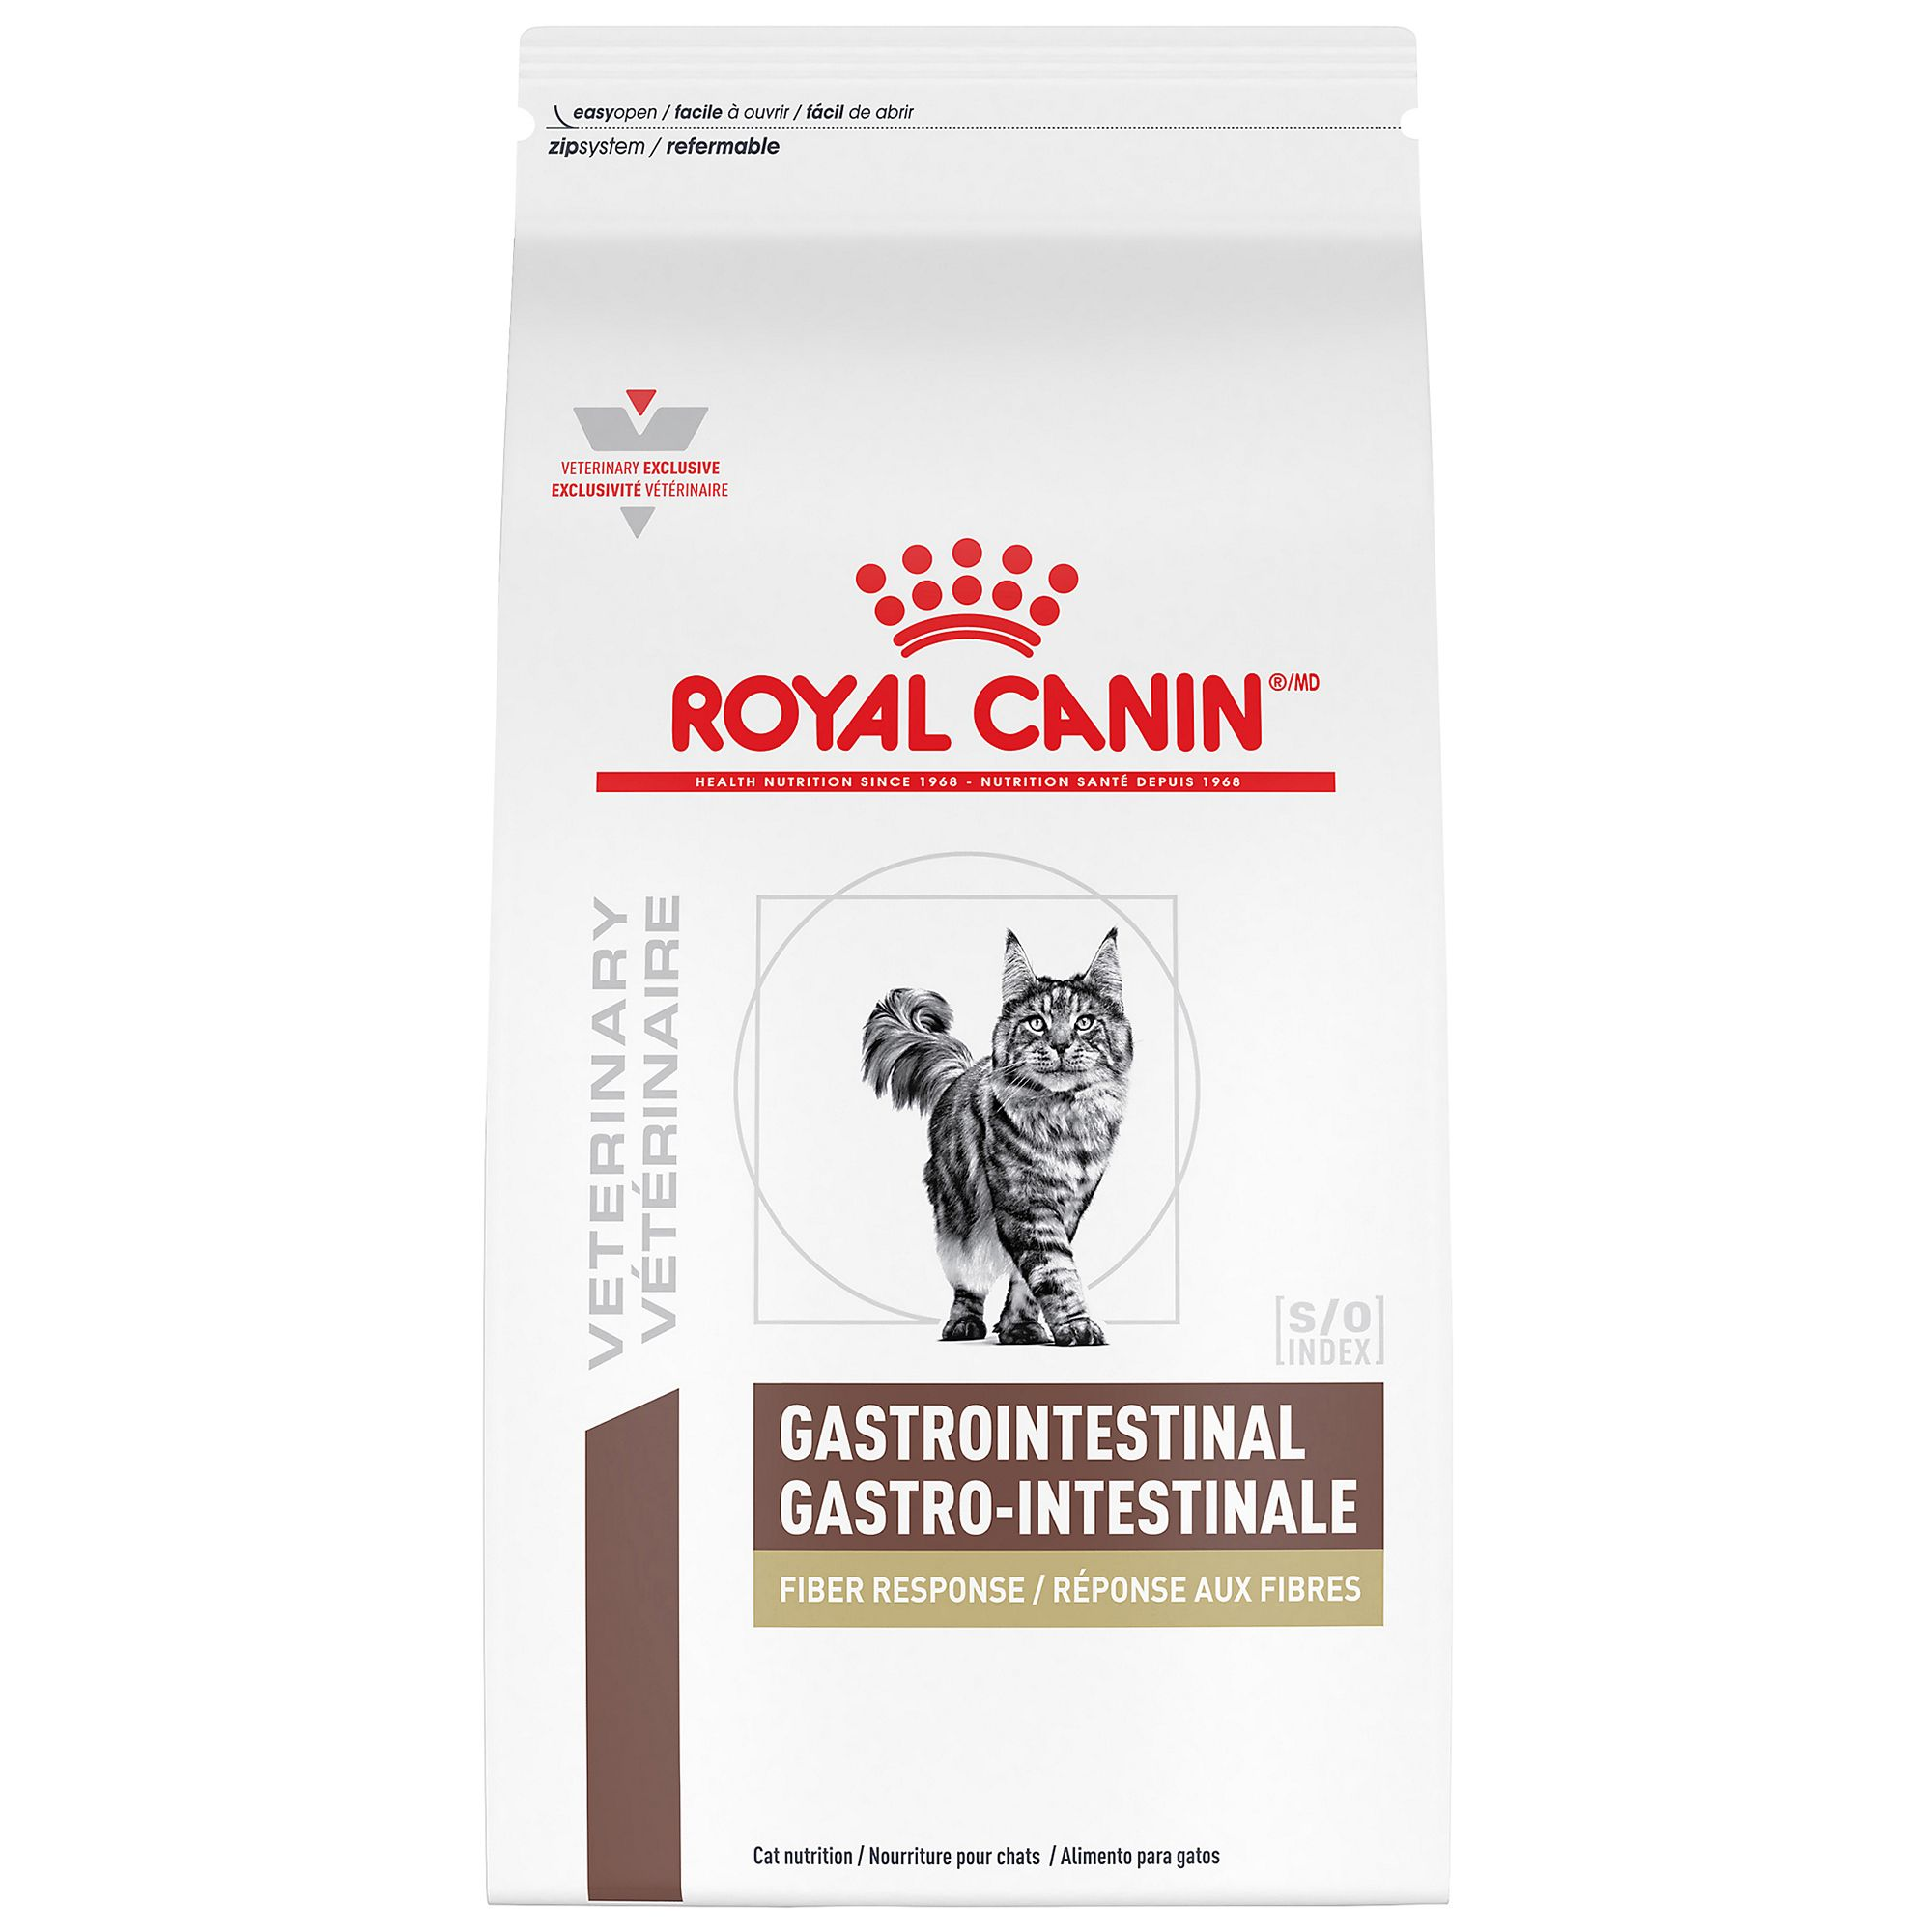 royal canin cat food usa. Black Bedroom Furniture Sets. Home Design Ideas